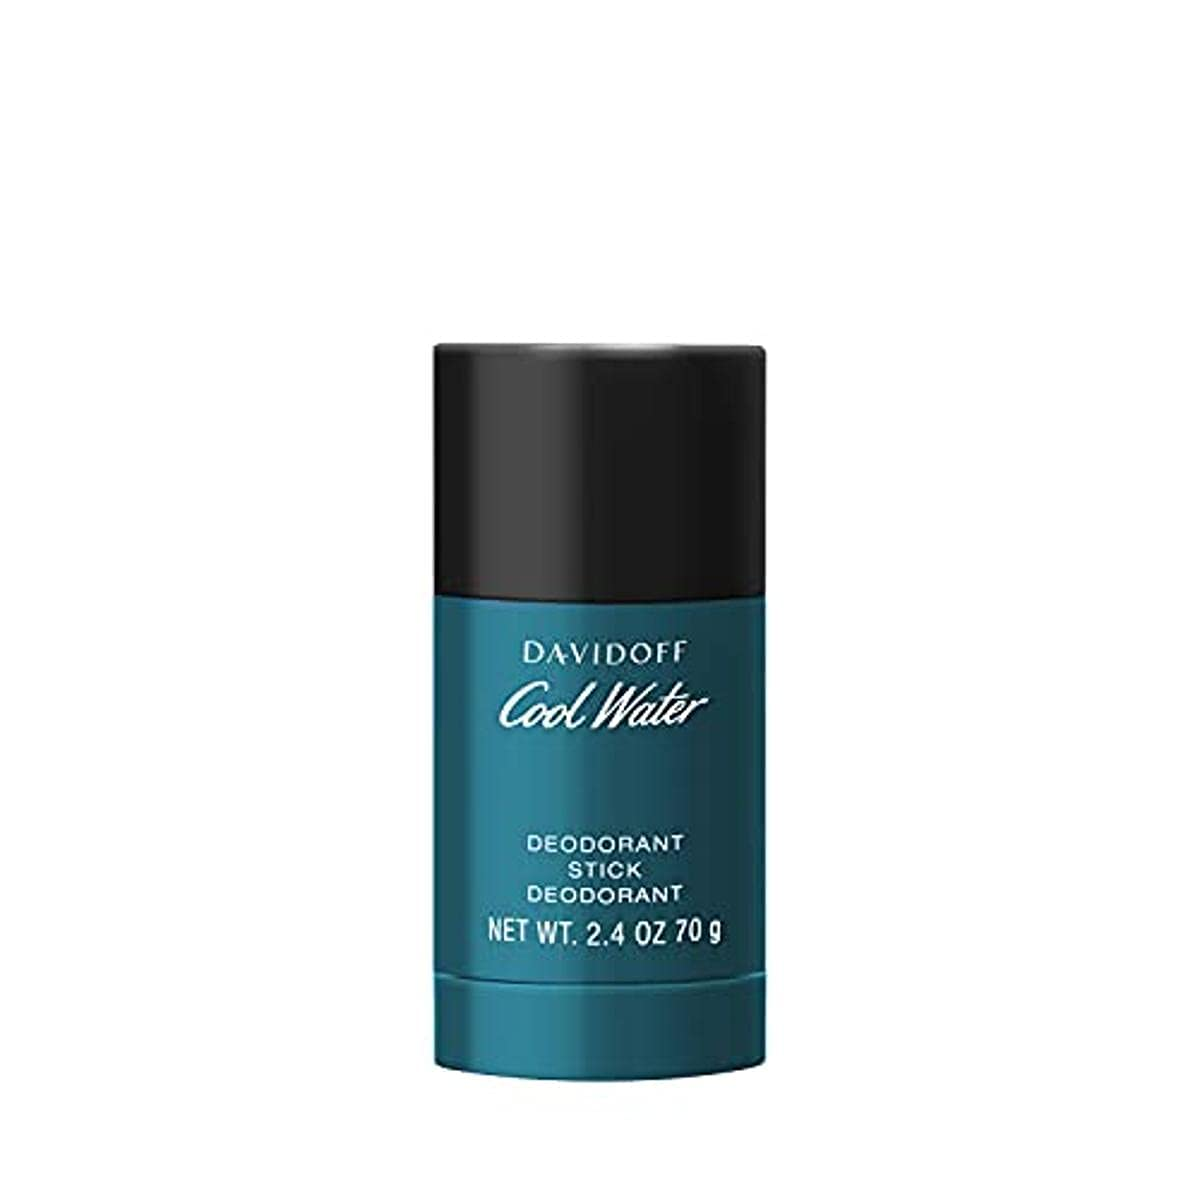 Davidoff Cool Water Deodorant Stick for - Men PACK Ranking TOP7 OF Max 54% OFF 2.4-Ounce